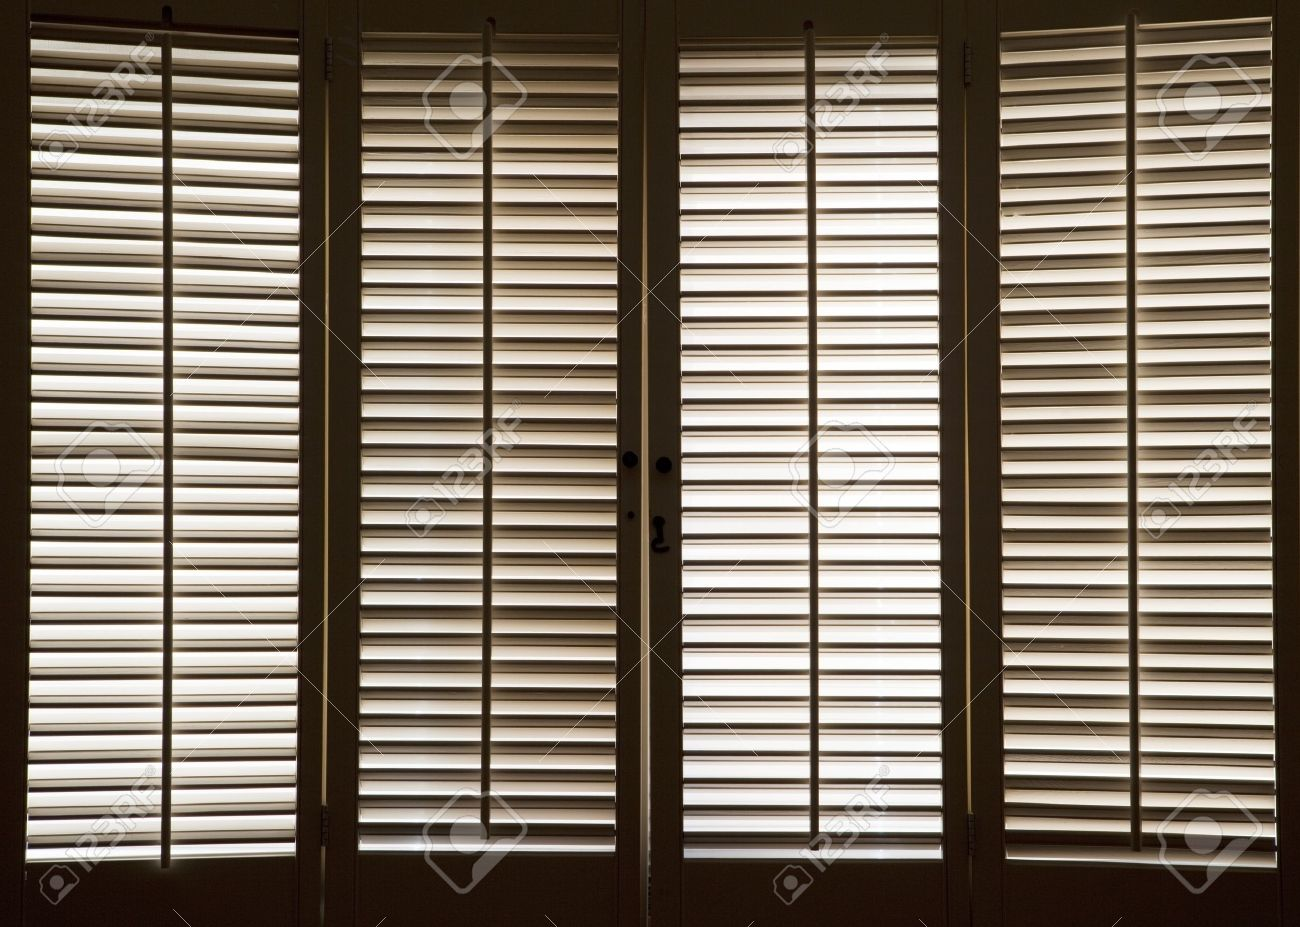 Wooden shutters in front of bright, sunlit windows - 12275249